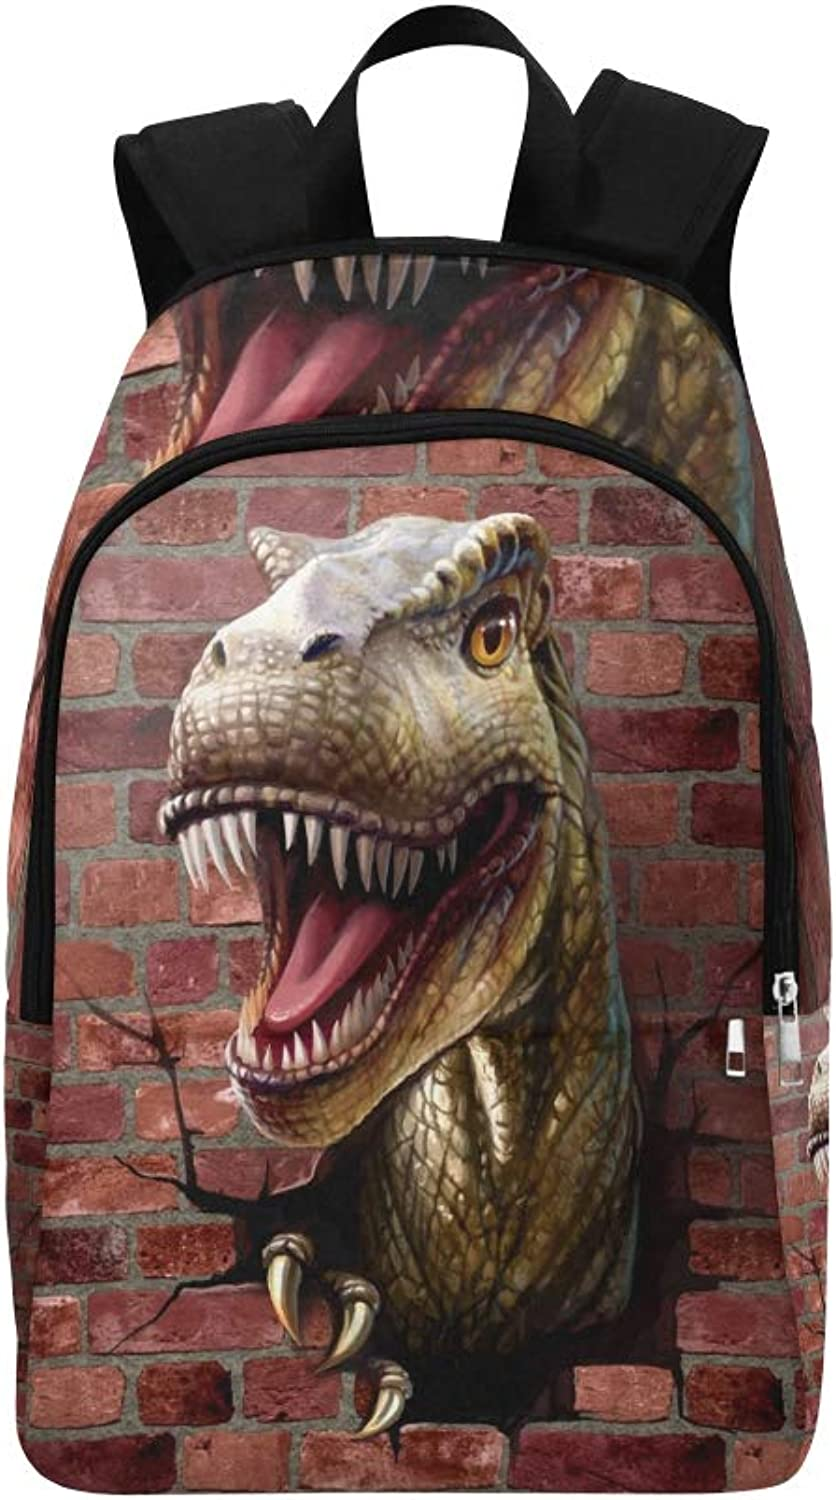 Dinosaur Close Up Through Brick Wall Casual Daypack Travel Bag College School Backpack for Mens and Women